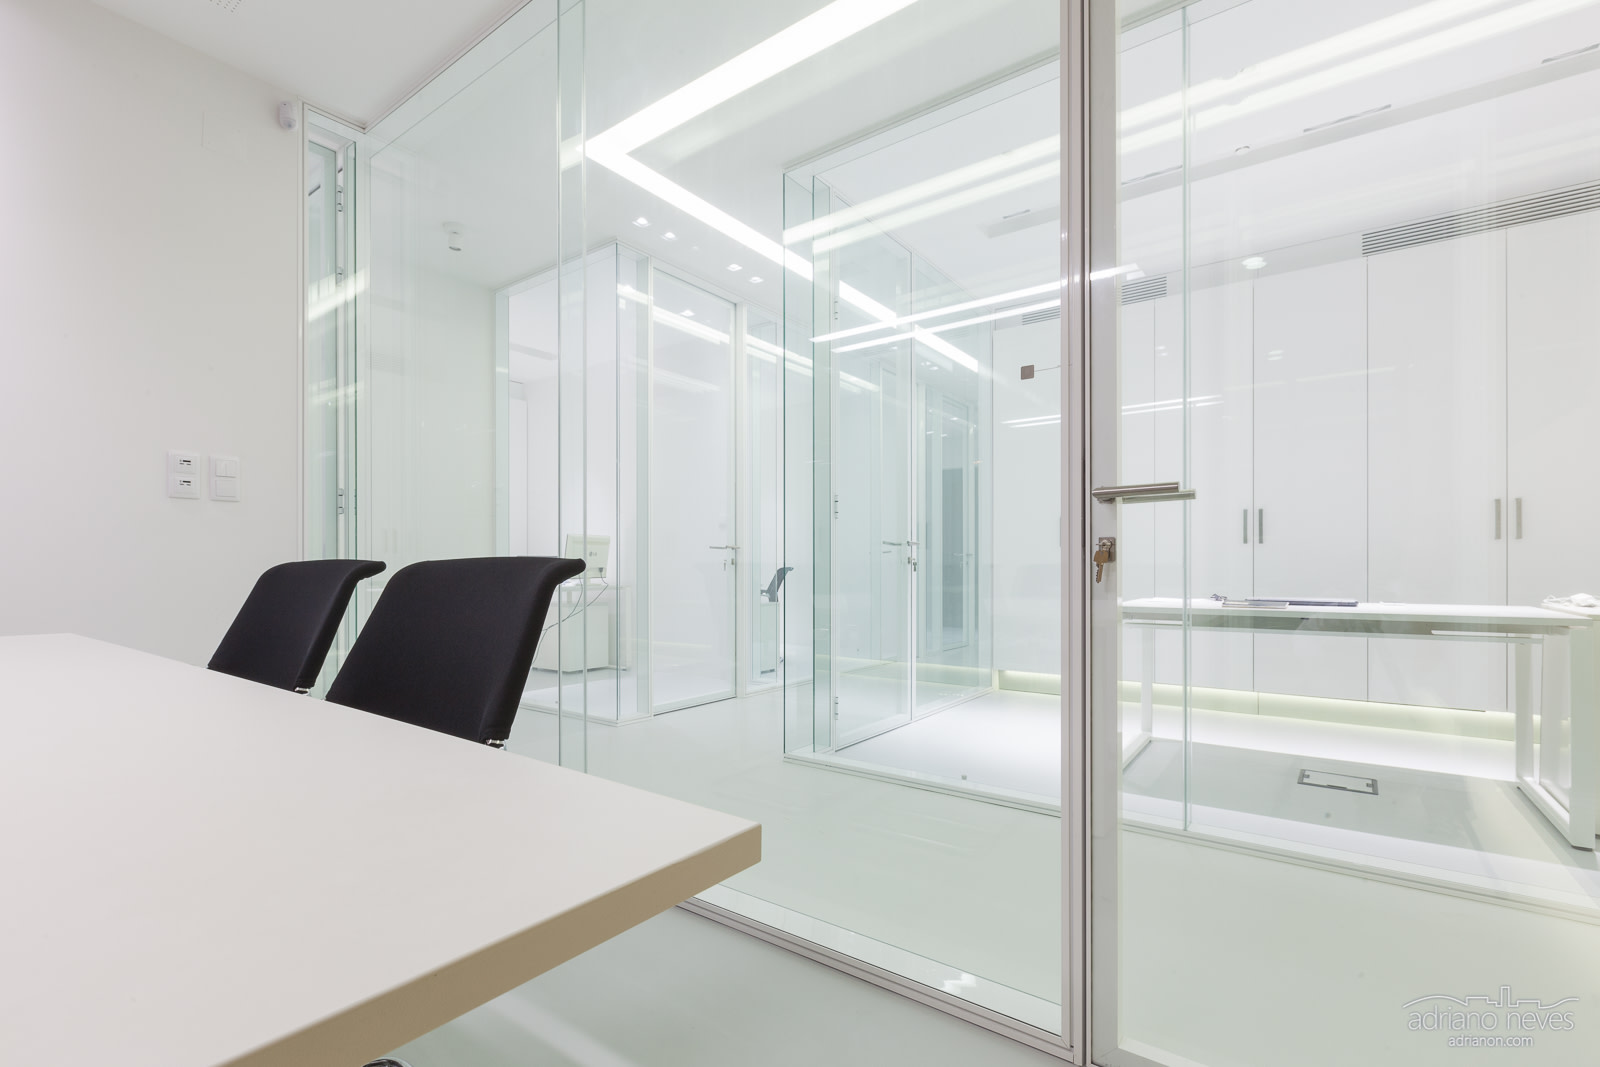 Indoor Office photo of Legal Partners Law Firm in Lisbon, Portugal - © Adriano Neves - adrianon.com - @acseven